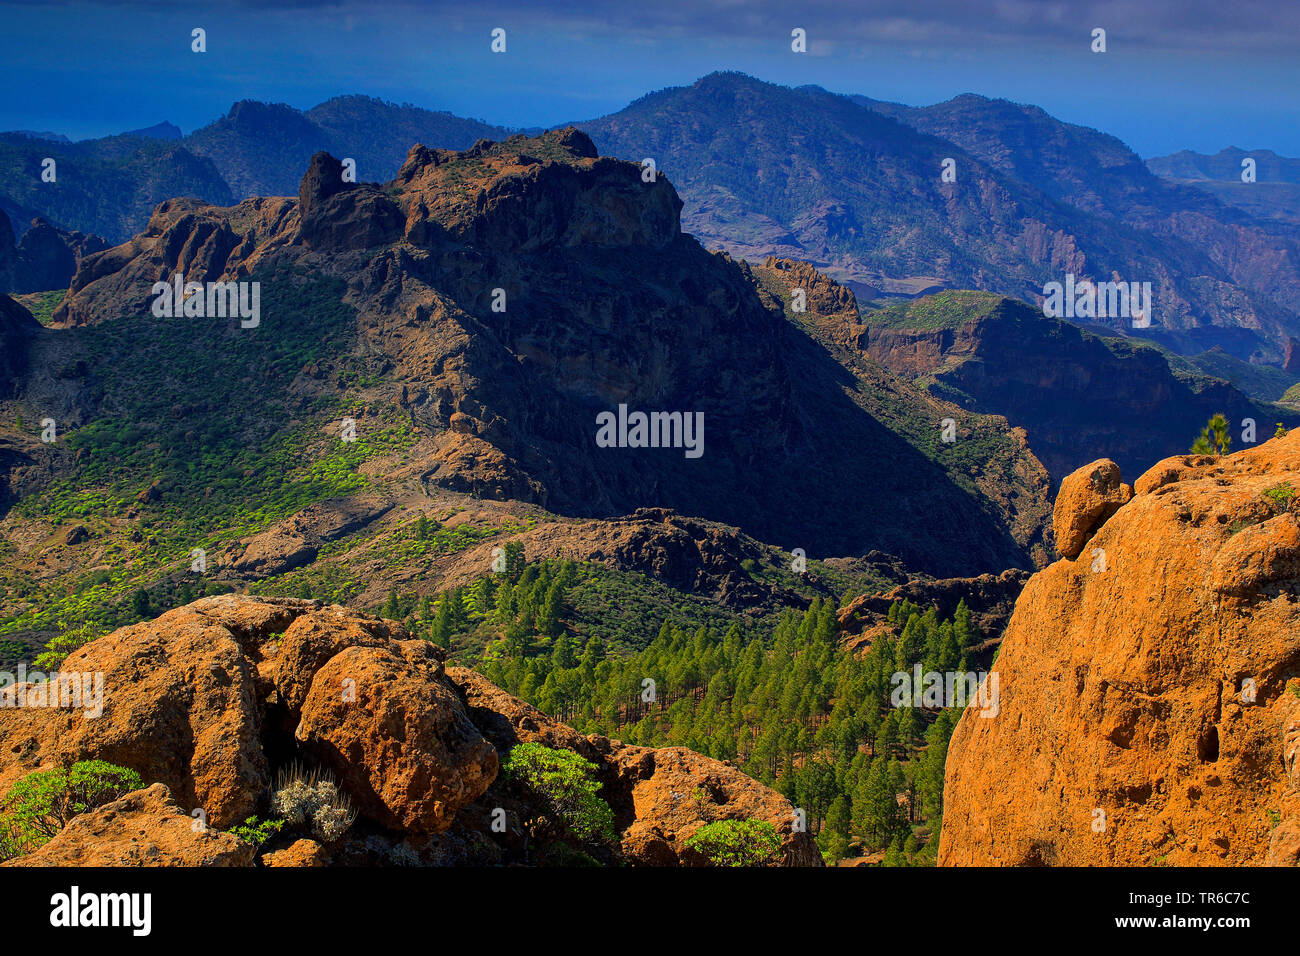 Gebirgslandschaft monumento natural del roque nublo, Kanaren, Gran Canaria | mountain scenery monumento natural del roque nublo, Canary Islands, Gran - Stock Image